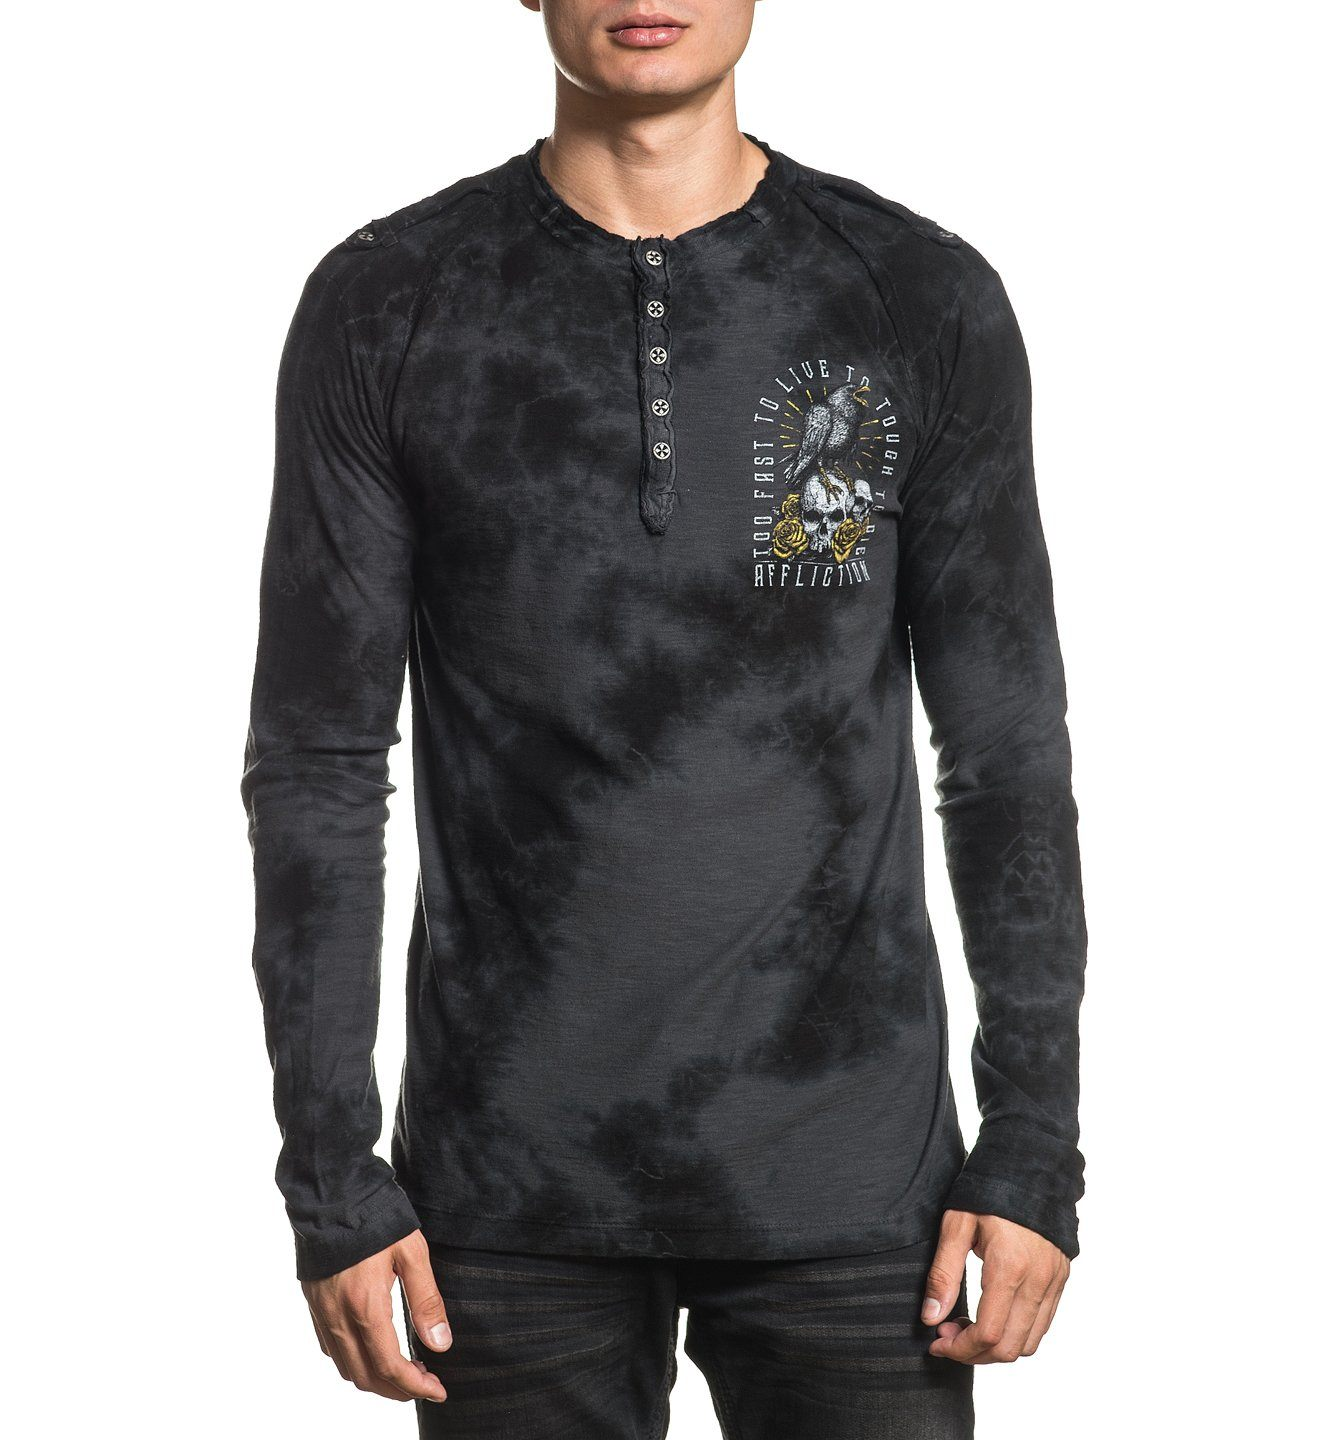 Mens Long Sleeve Tees - Black Crow